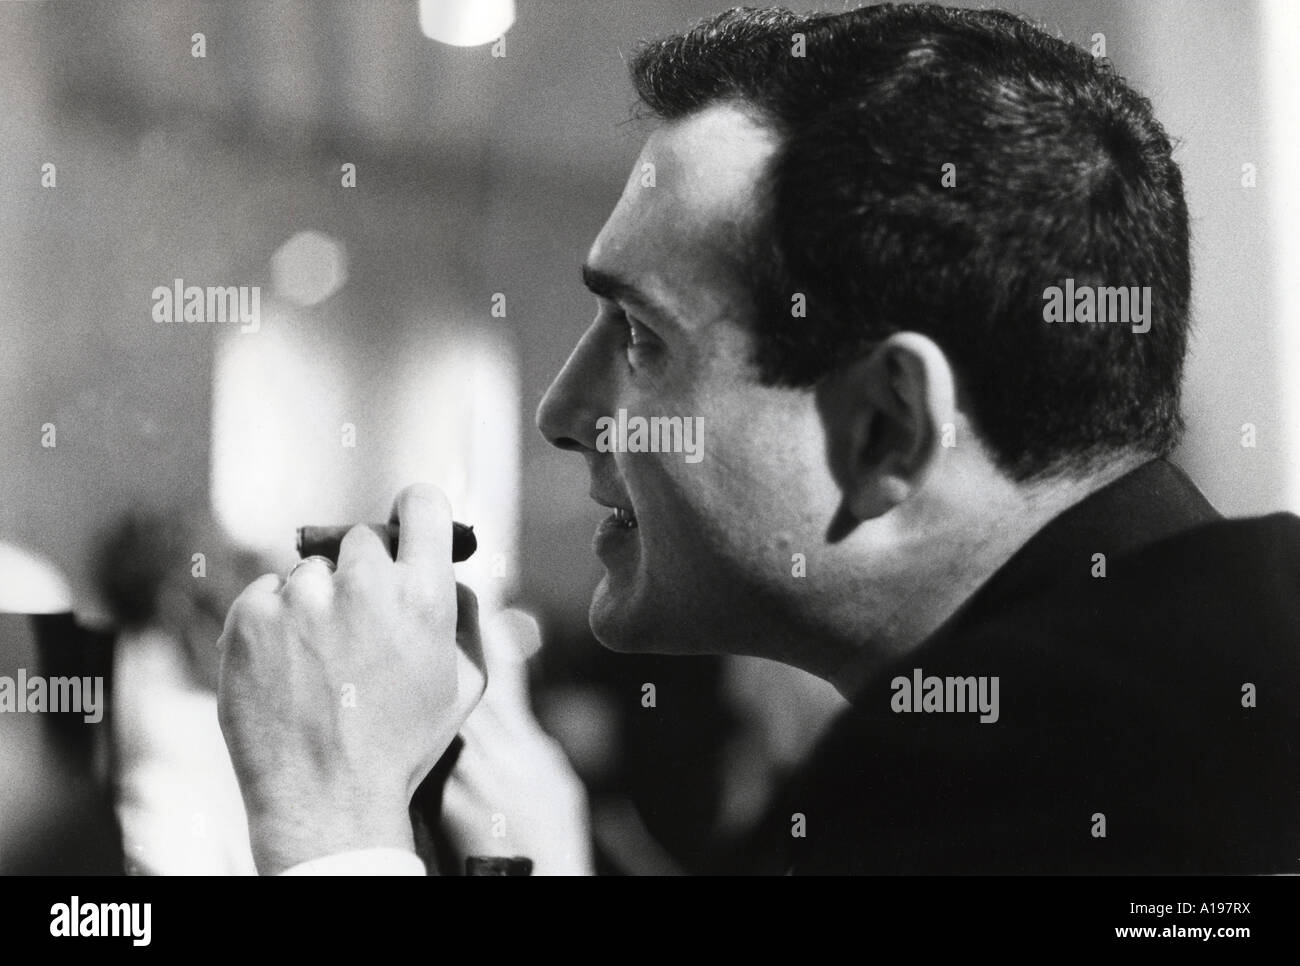 HAROLD PINTER British playwrite and author about 1958 - Stock Image